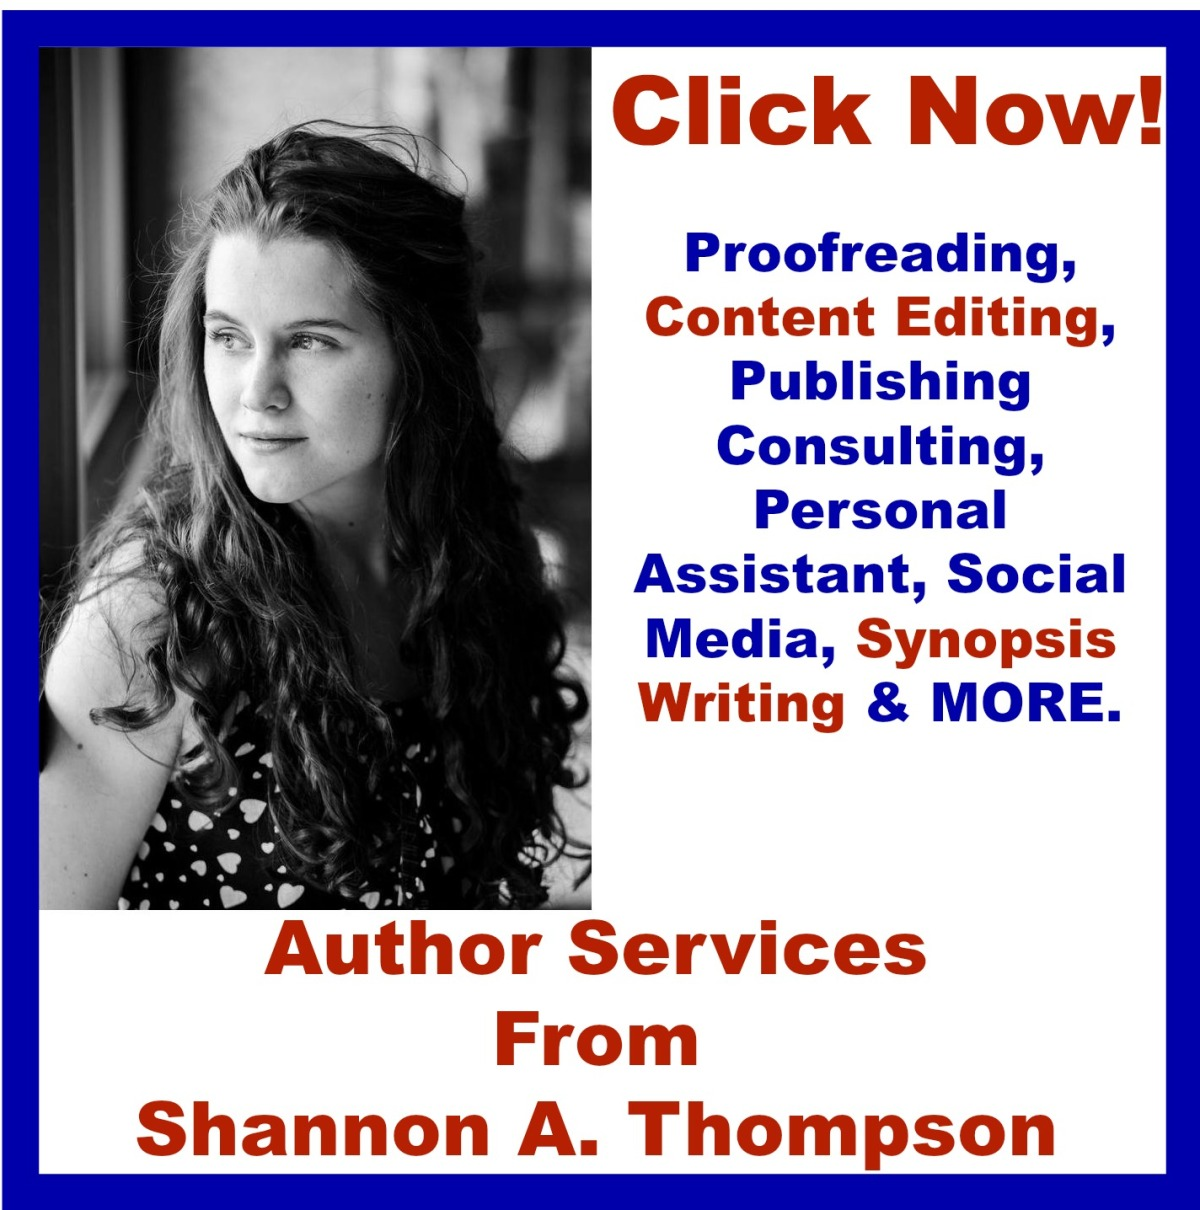 Get services from an expert. Shannon A. Thompson Author Services. @ShanAshleeT23